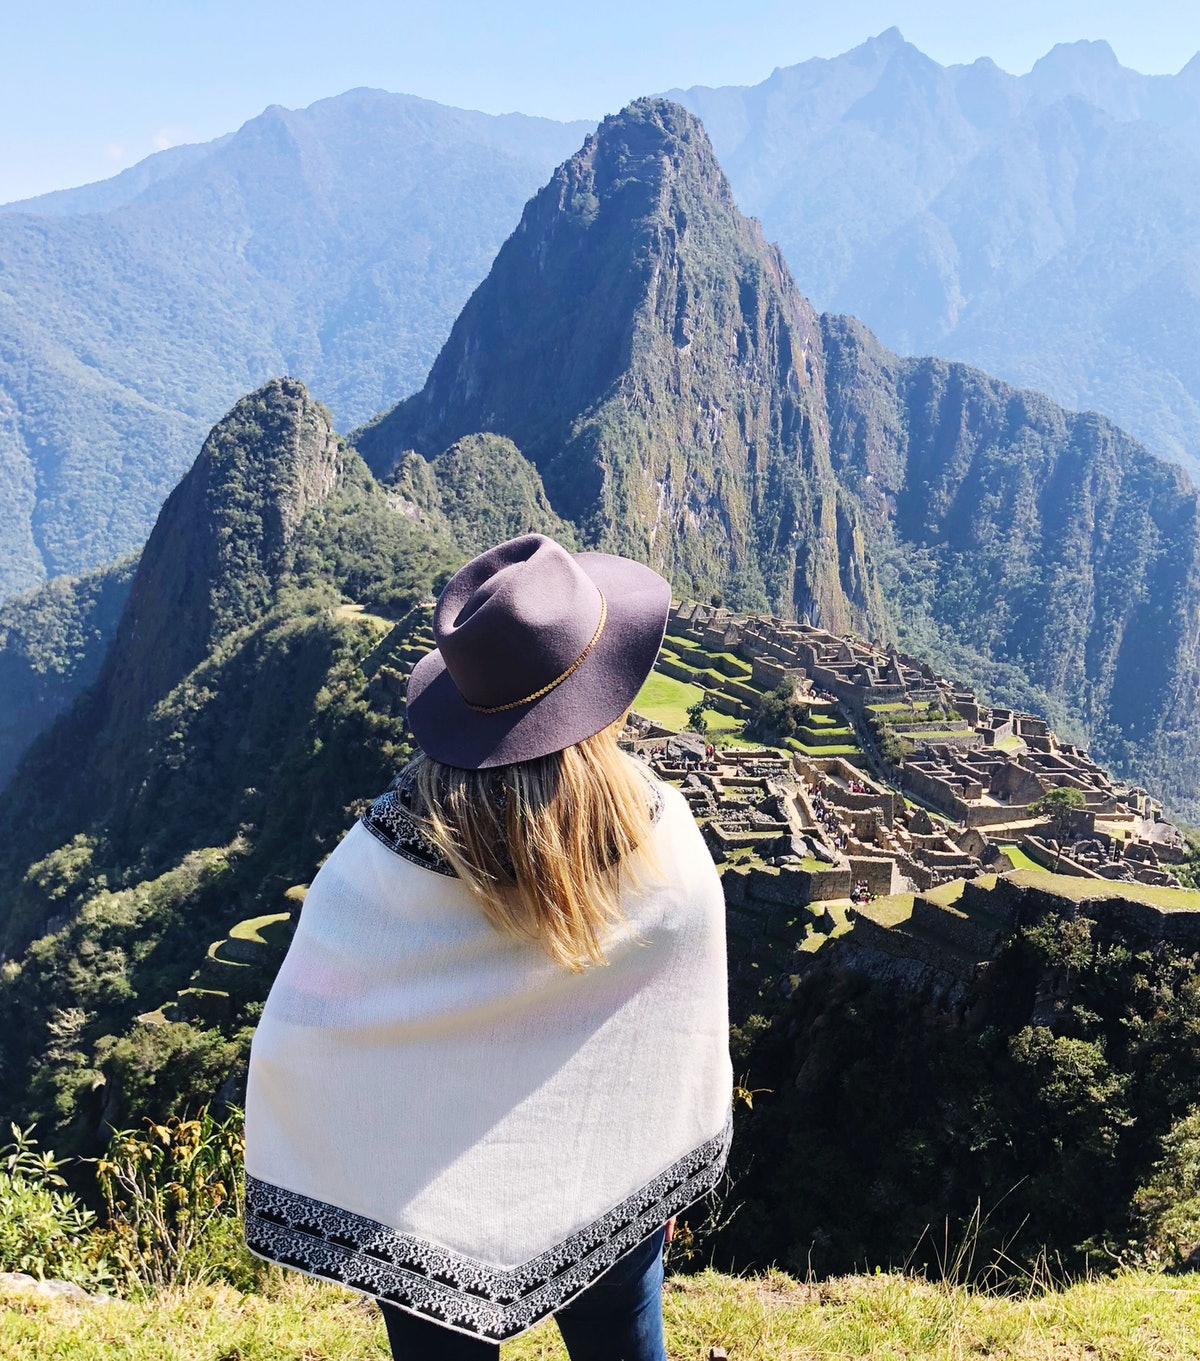 A young woman with blonde hair stands in front of Machu Picchu in Peru on a sunny day.